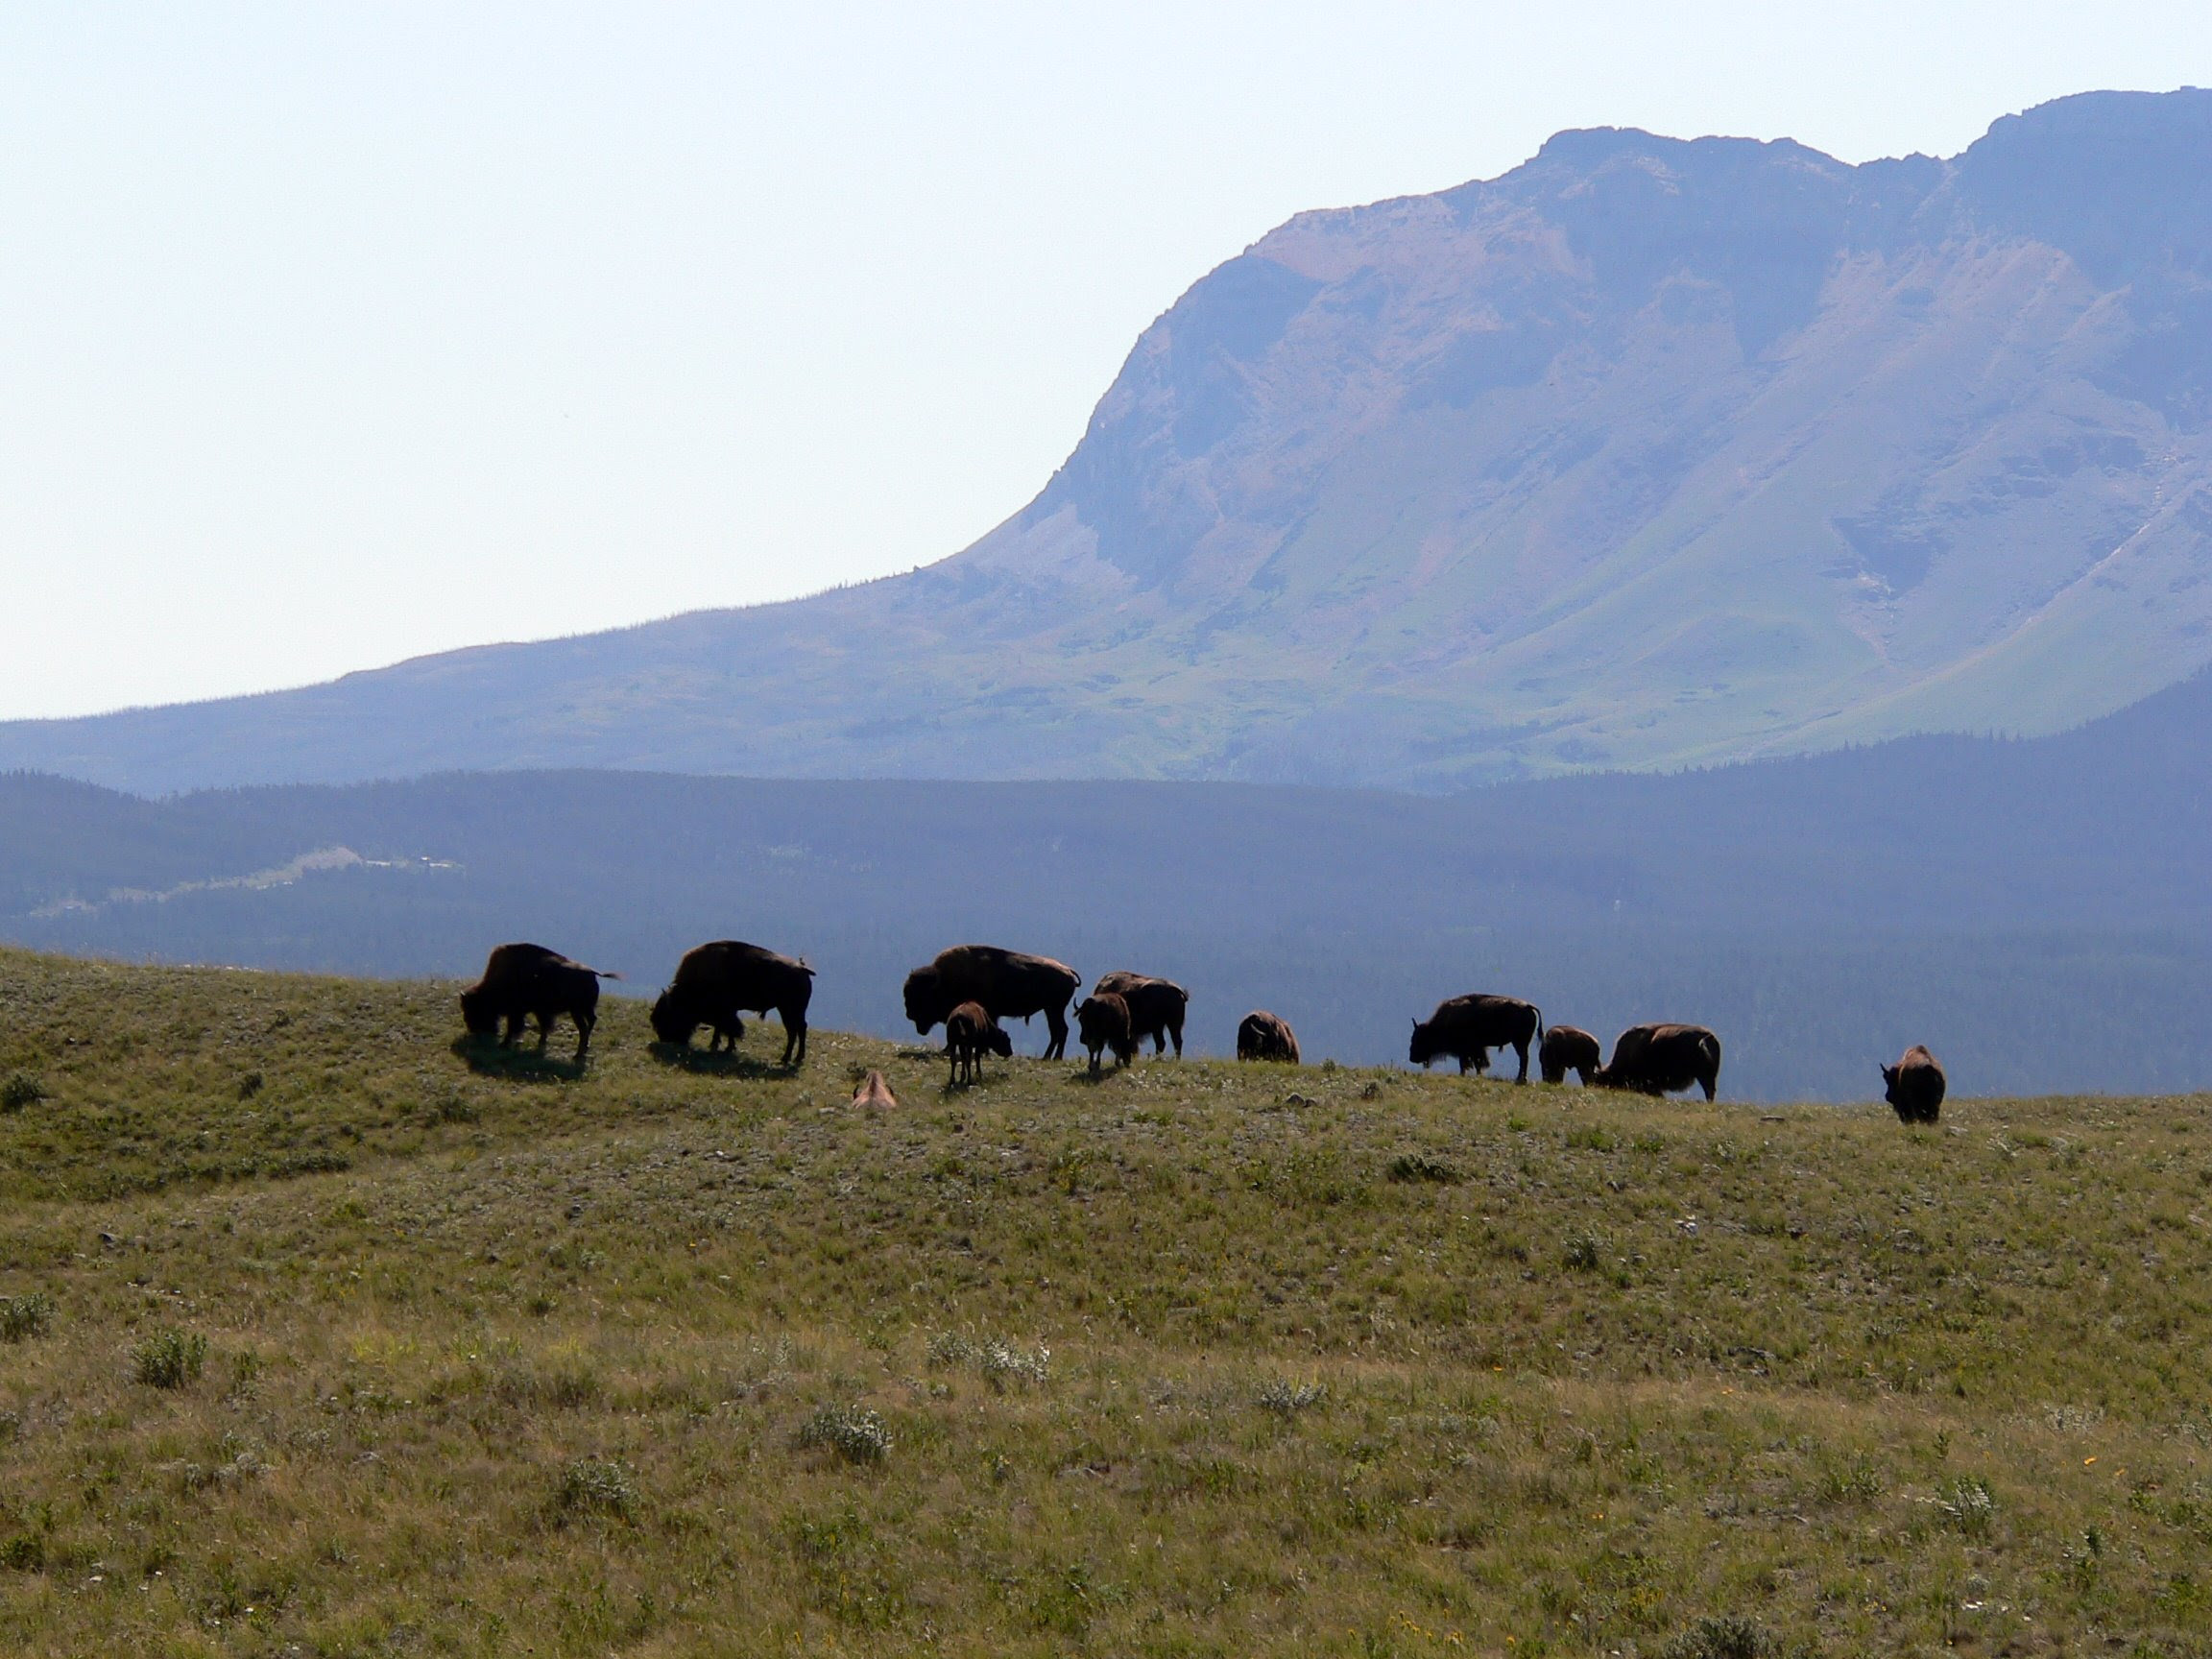 http://upload.wikimedia.org/wikipedia/commons/e/ed/Bison_bison_Waterton_Lakes.jpg